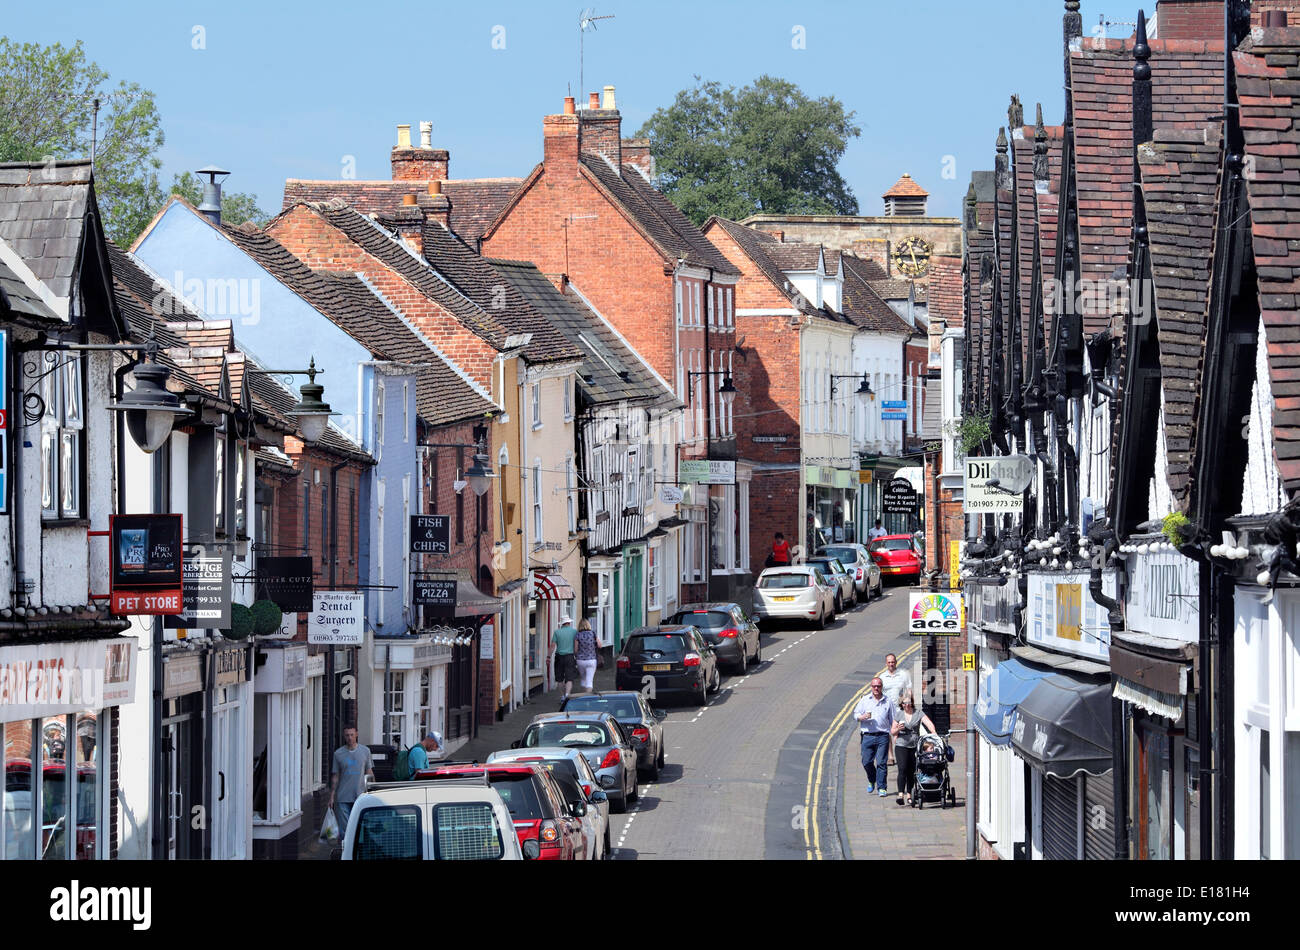 The High Street, Droitwich Spa, Worcestershire. Stock Photo